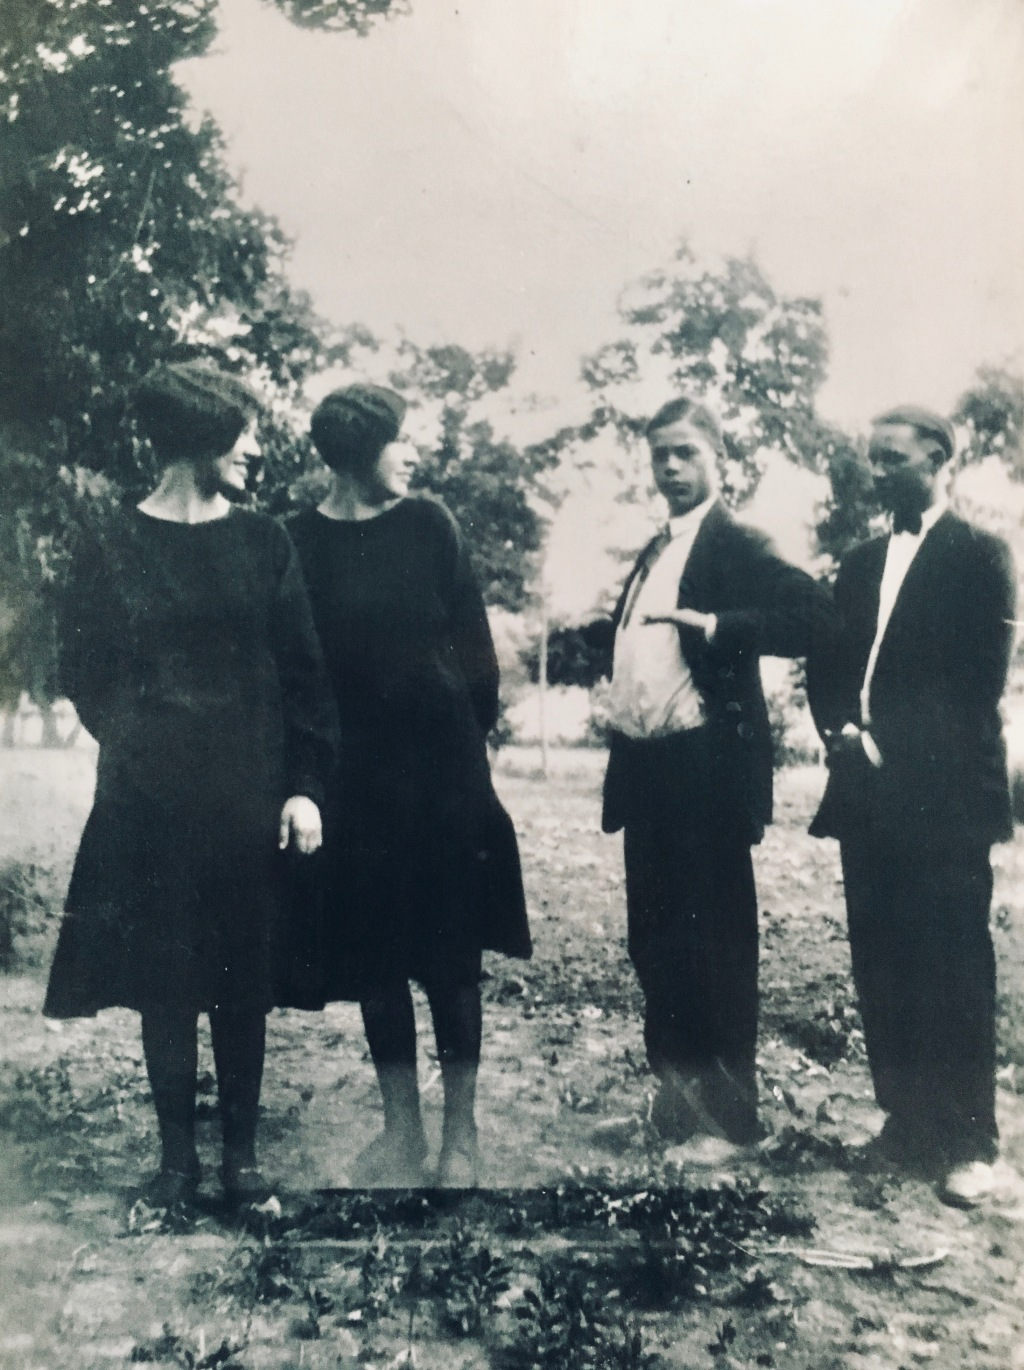 Two young ladies and two young men in funeral attire.